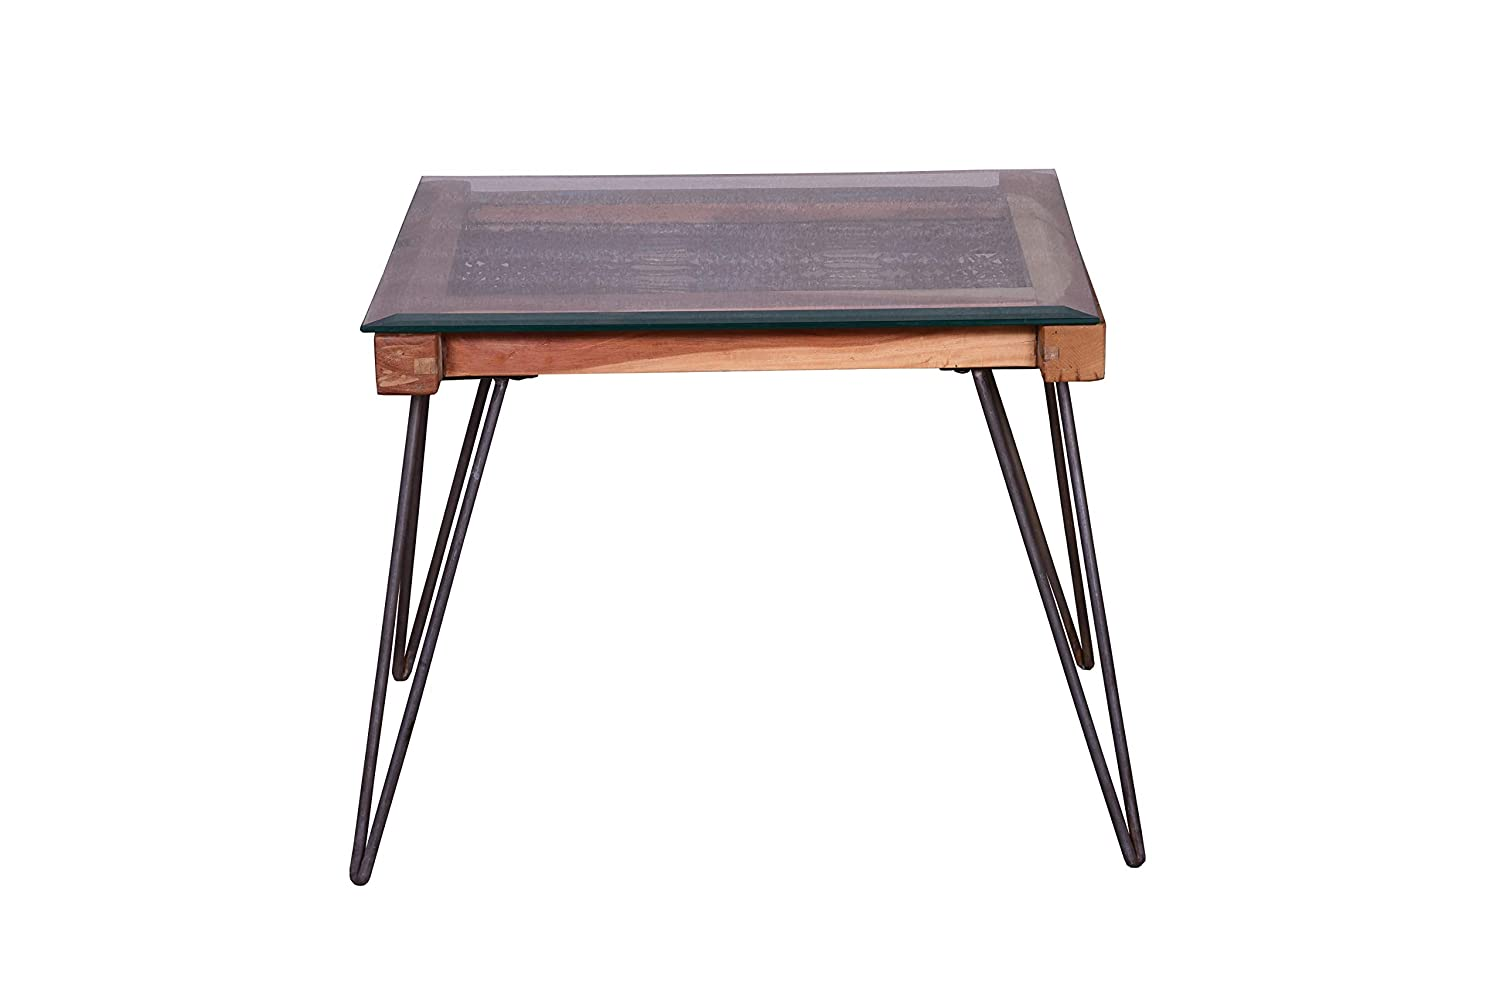 Accent Glass Side Table Contemporary Style-Natural Wood and Metal Designe Gallerie 1711-3-602 Alyssa End Top Living Room